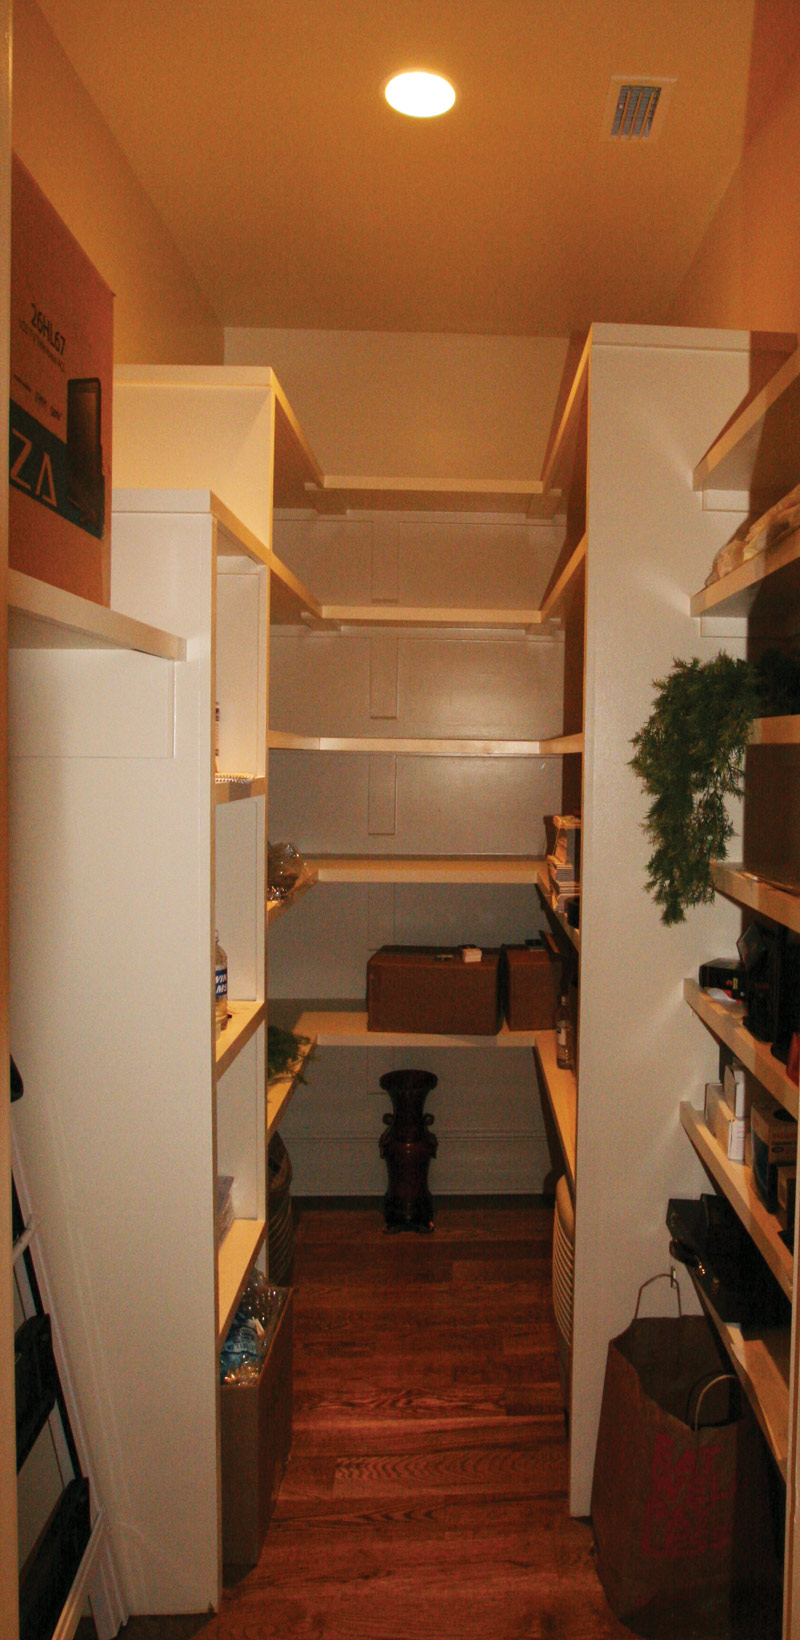 Waterfront Home Plan Closet Photo 01 024S-0025